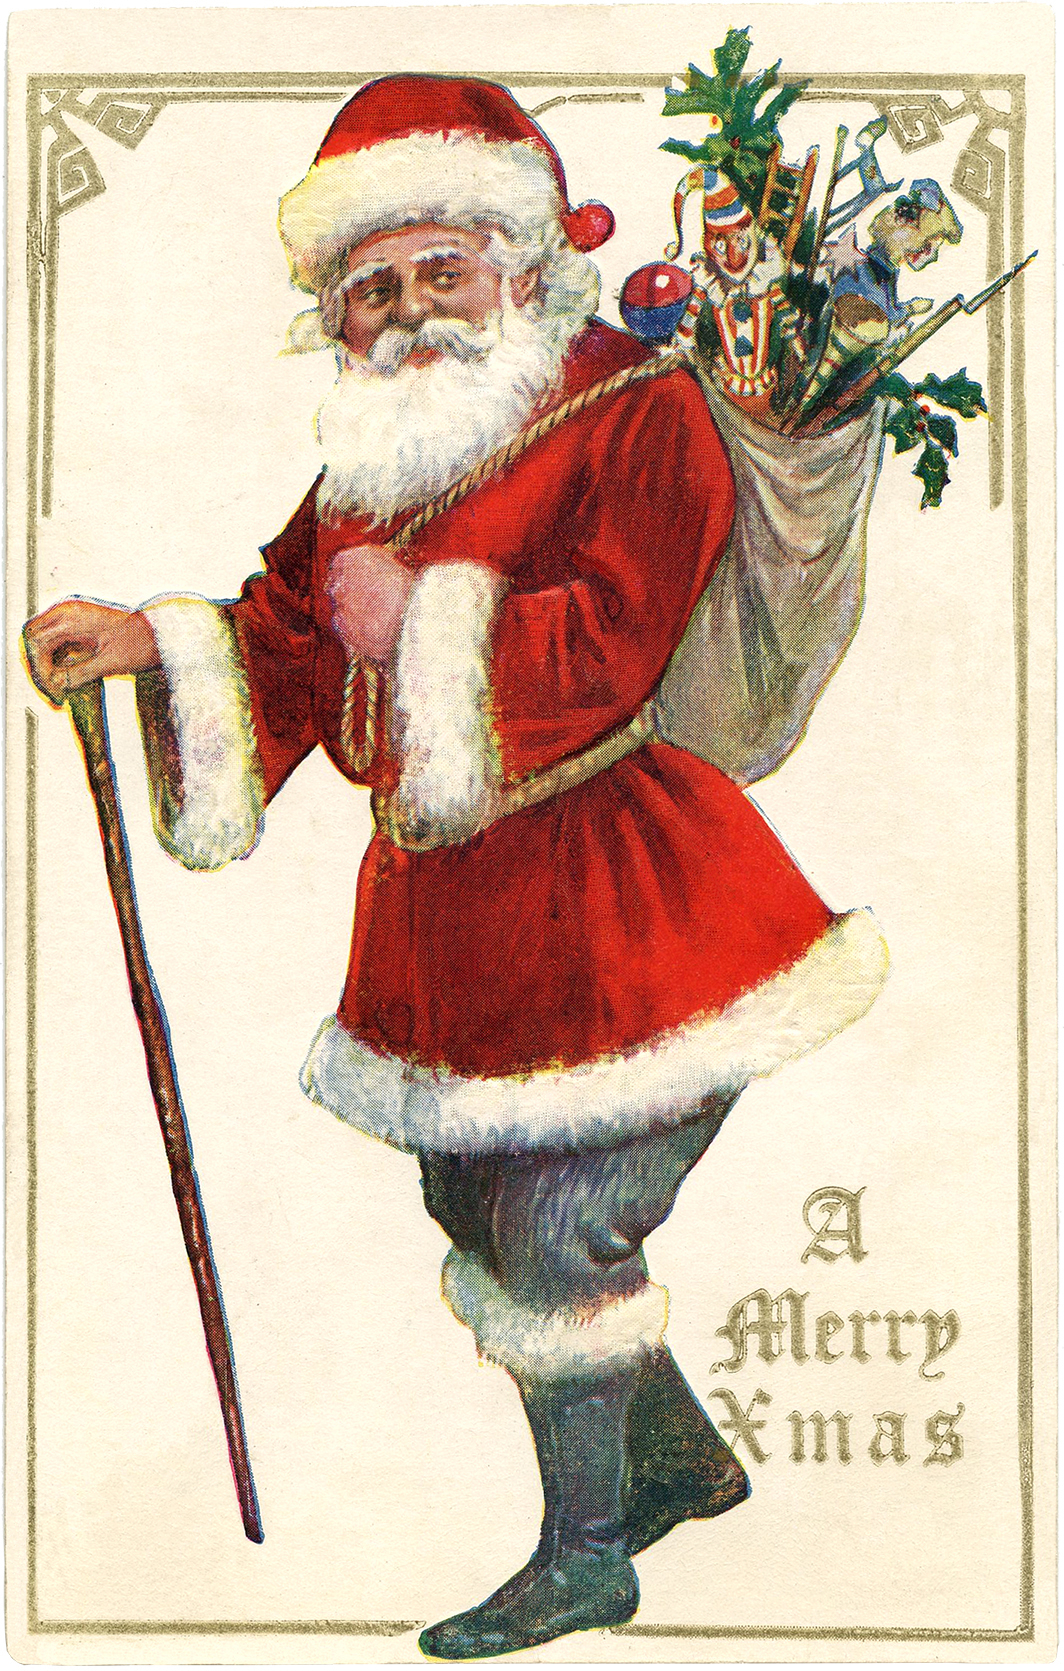 Antique Santa With Cane Image The Graphics Fairy